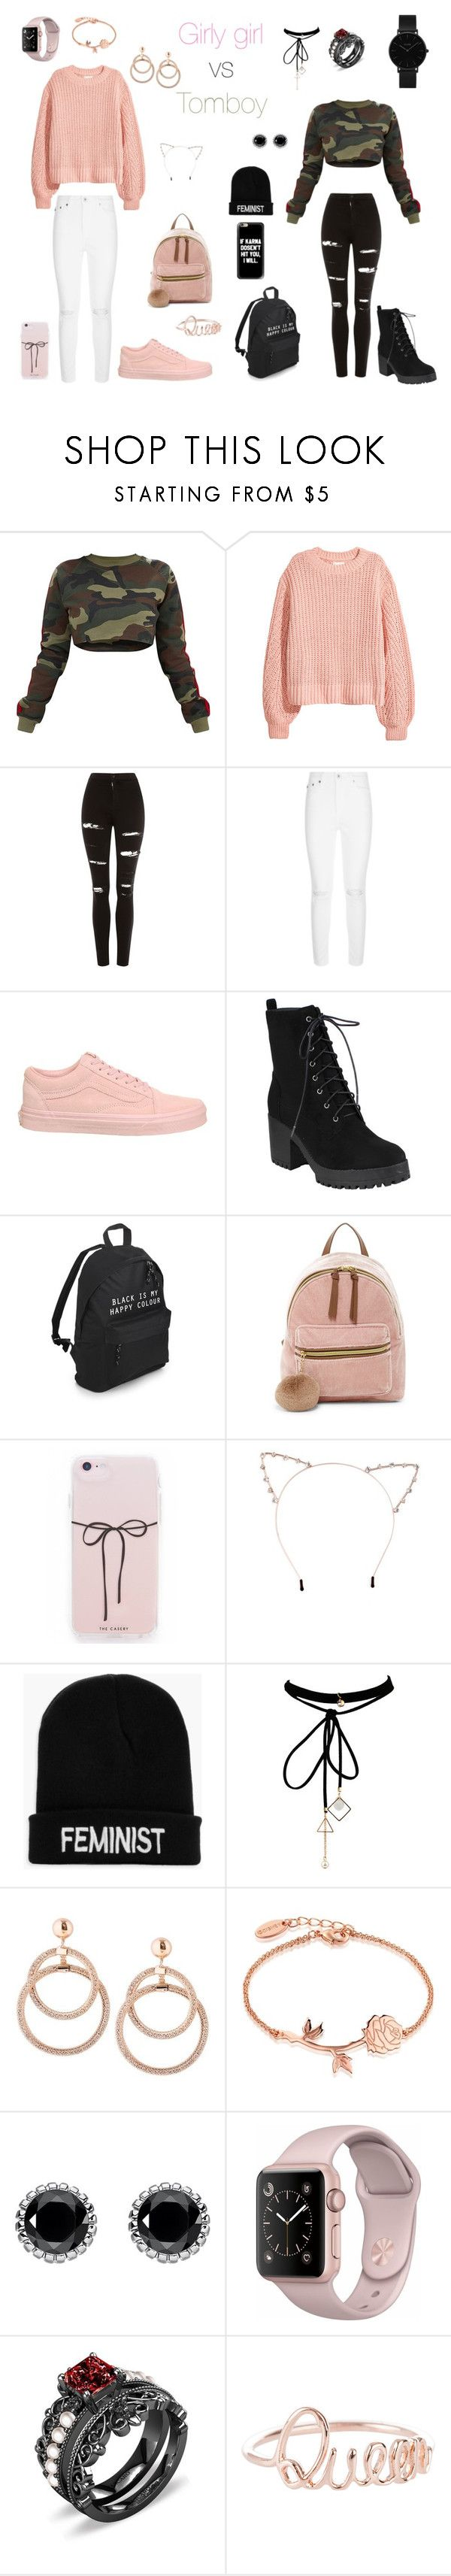 """""""Girly girl vs Tomboy"""" by melanierosec-1 on Polyvore featuring H&M, Topshop, AG Adriano Goldschmied, Vans, T-shirt & Jeans, Cara, Boohoo, WithChic, Disney and Thomas Sabo"""